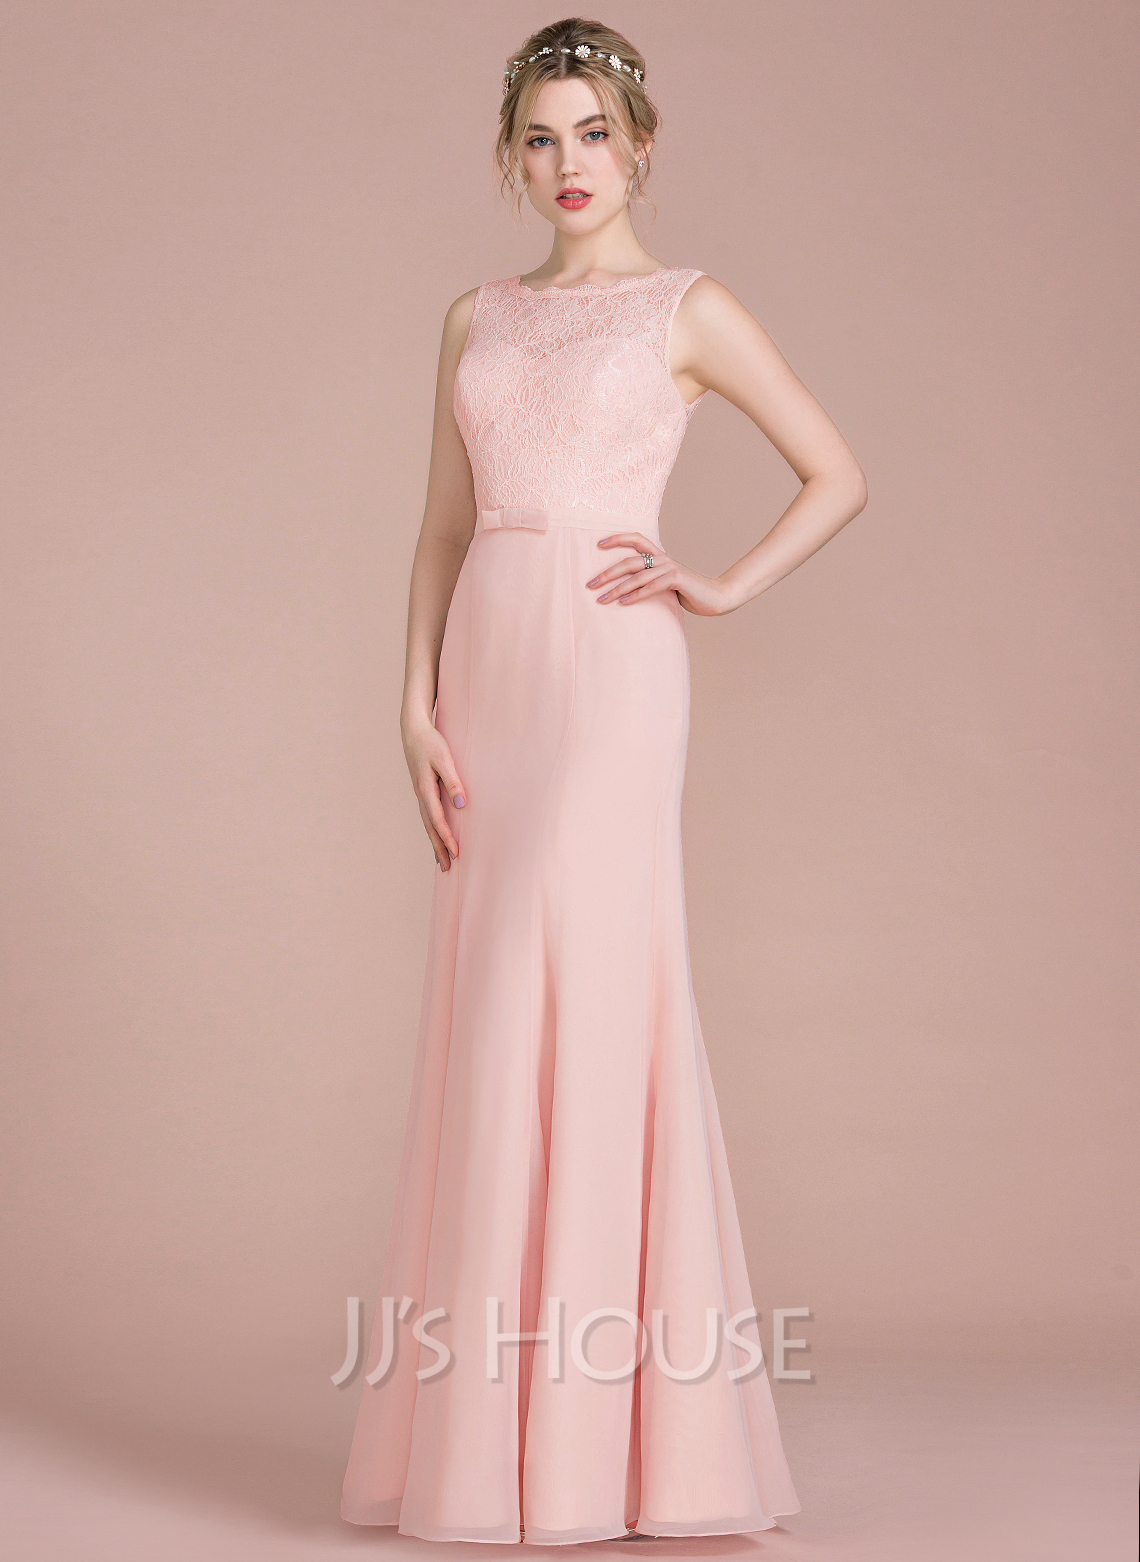 Trumpet/Mermaid Scoop Neck Floor-Length Chiffon Lace Bridesmaid Dress With Bow(s)